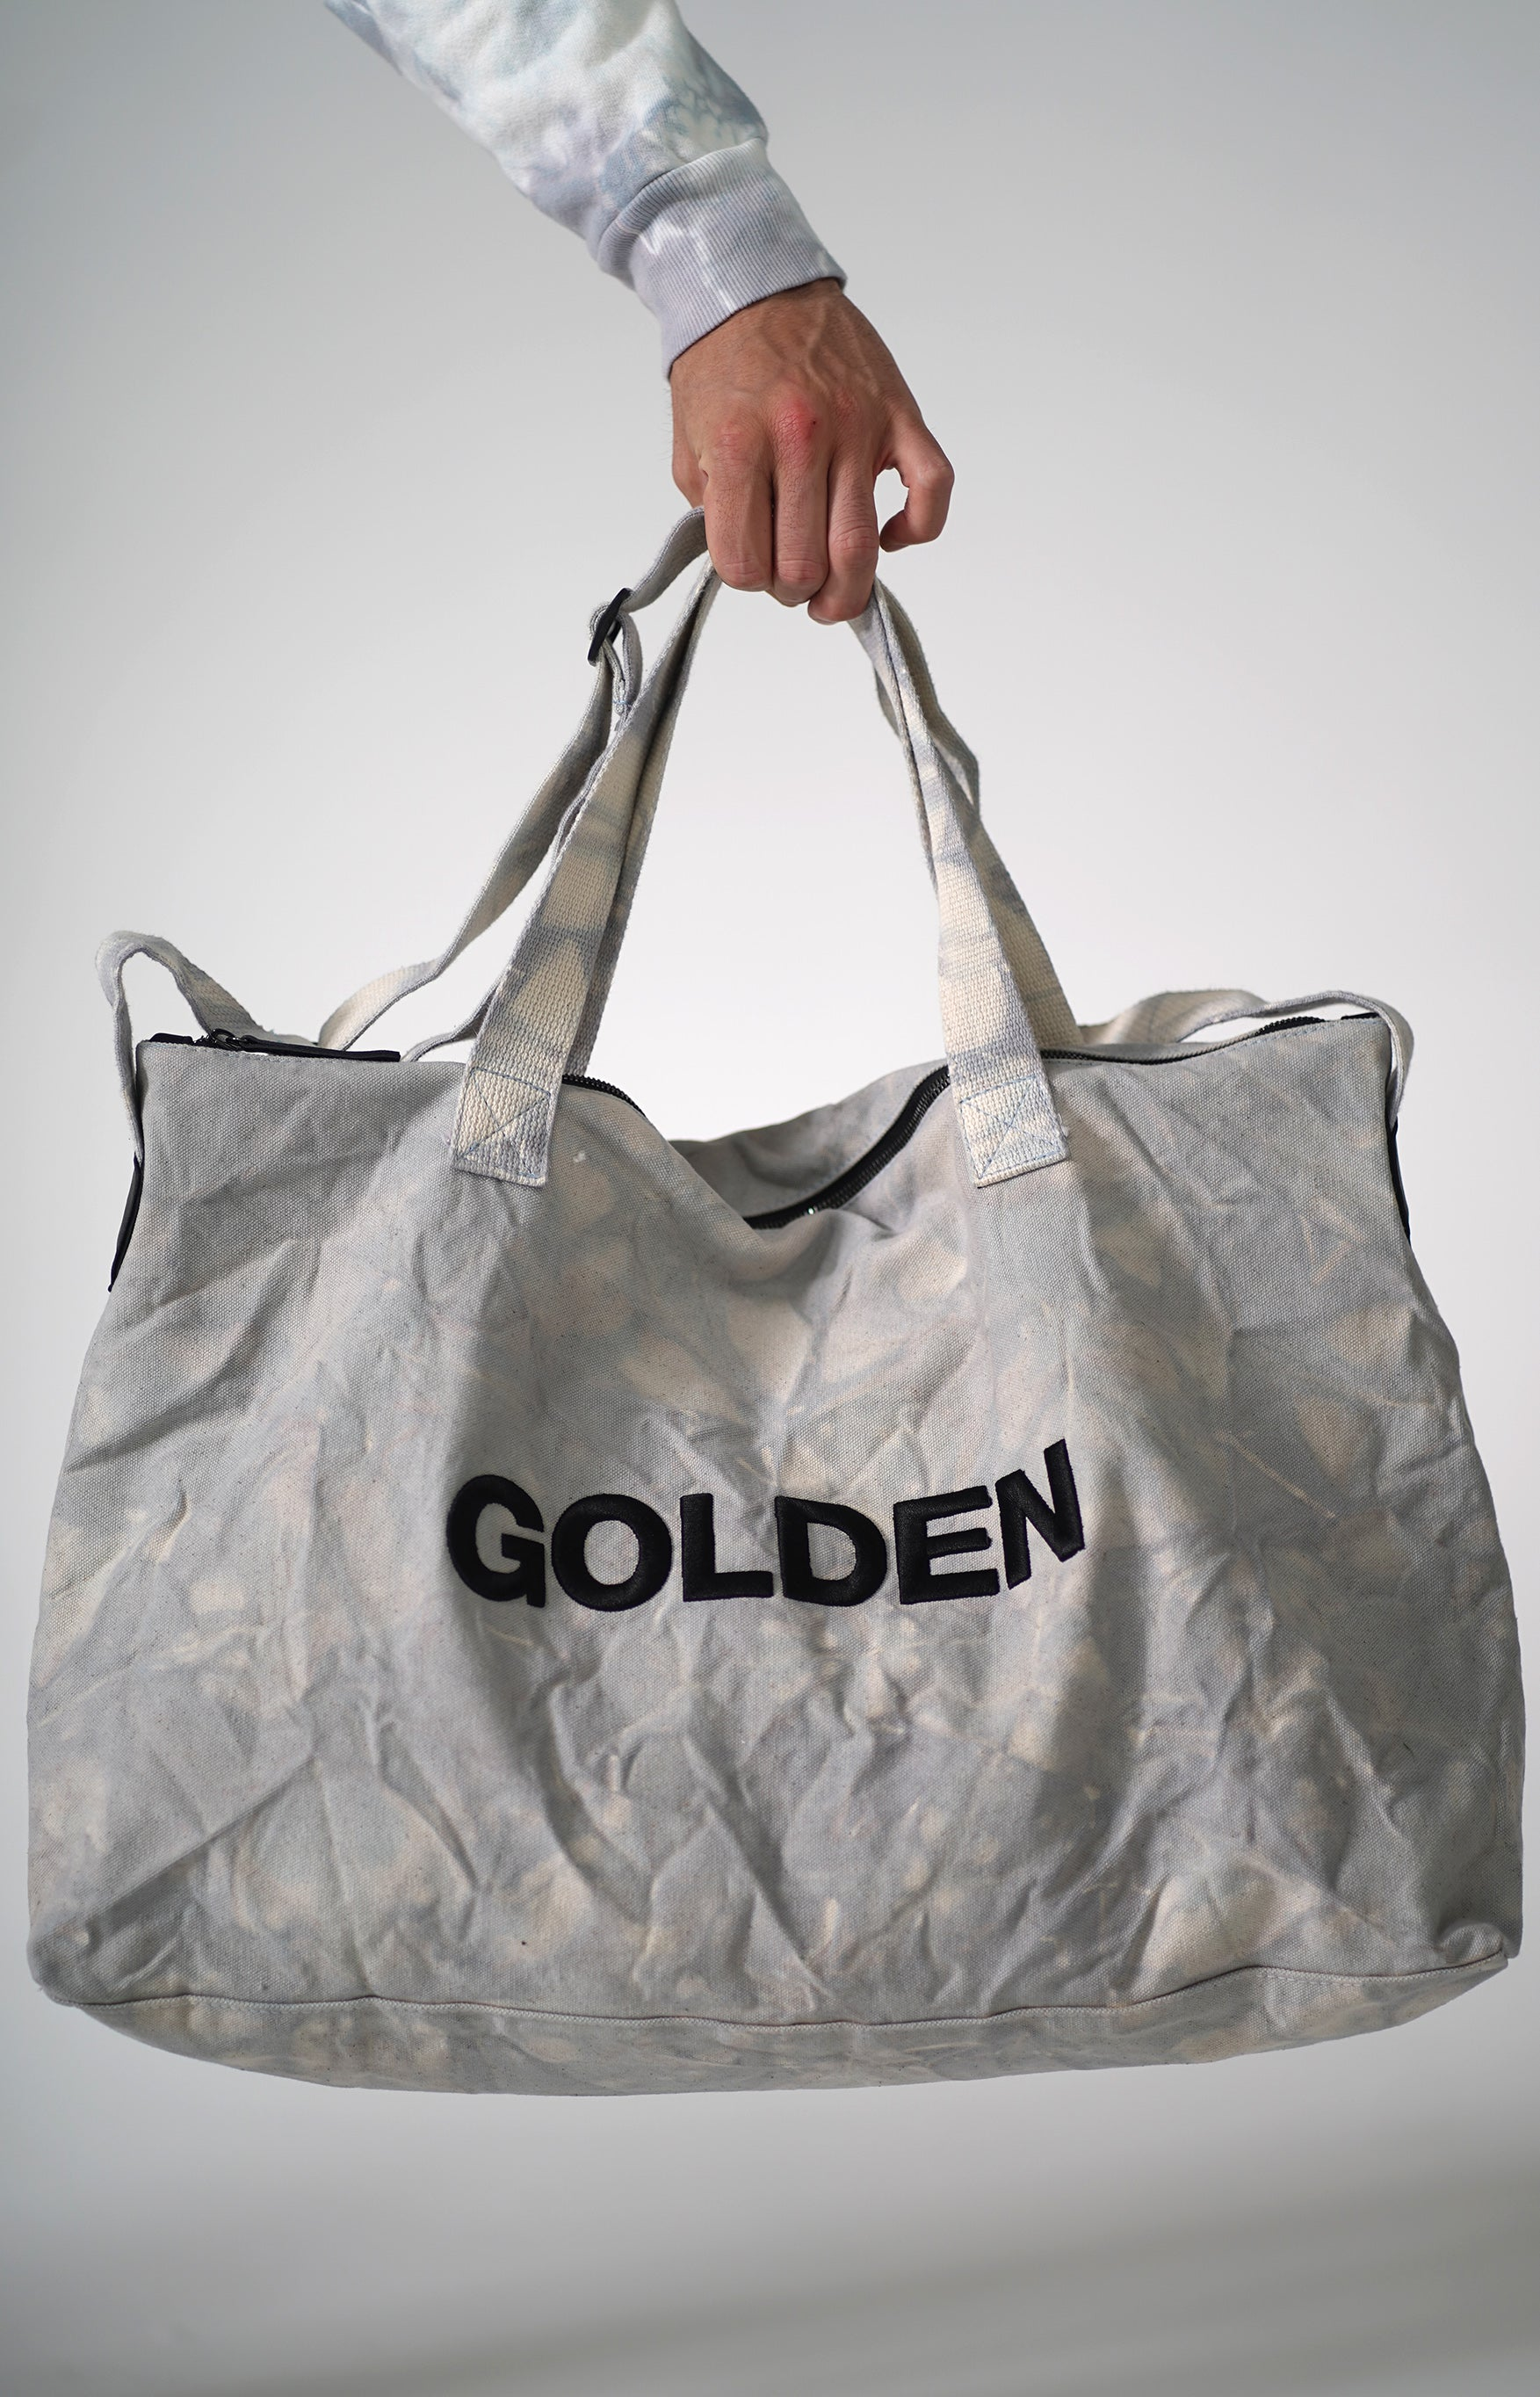 Golden Aesthetics Diamond Tie Dye Gym Bag